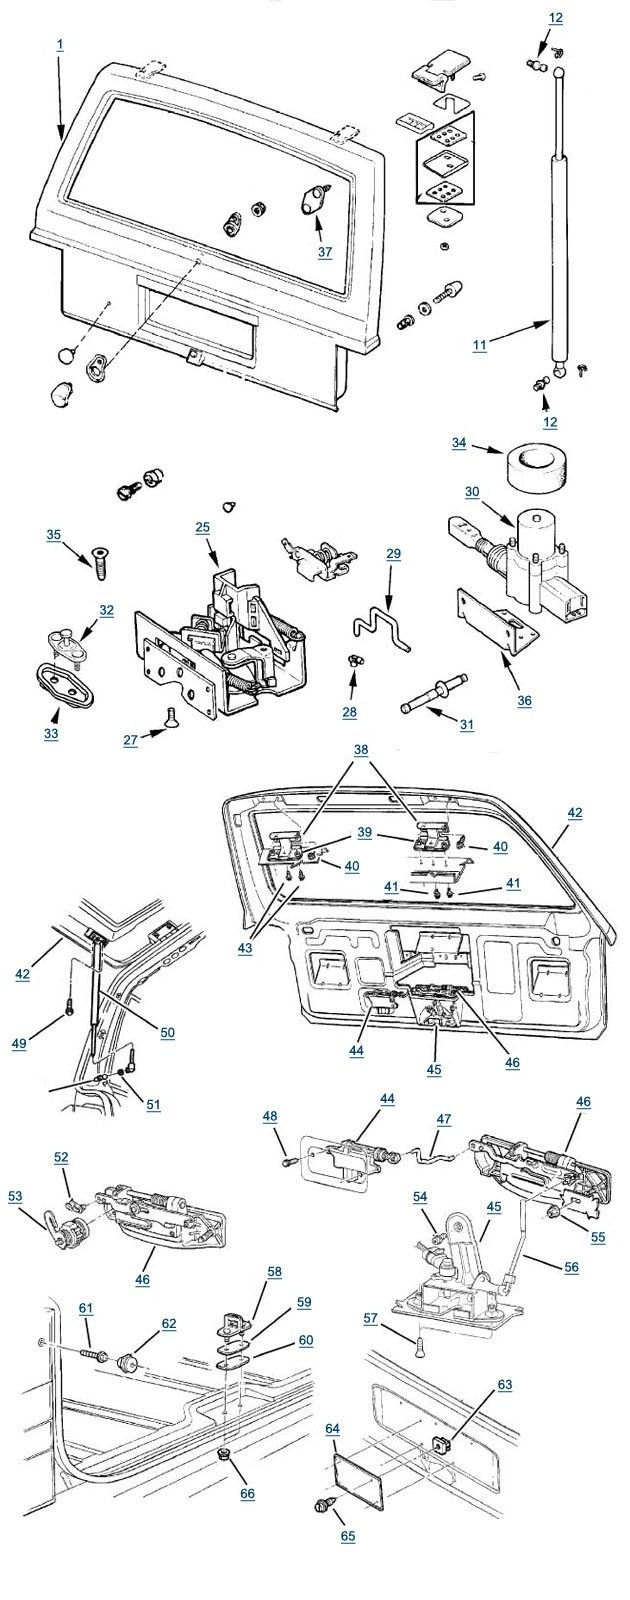 Jeep Cherokee Parts Diagrams : cherokee, parts, diagrams, DIAGRAM], Cherokee, Diagram, Version, Quality, NECKDIAGRAM.DESTRAITALIA.IT